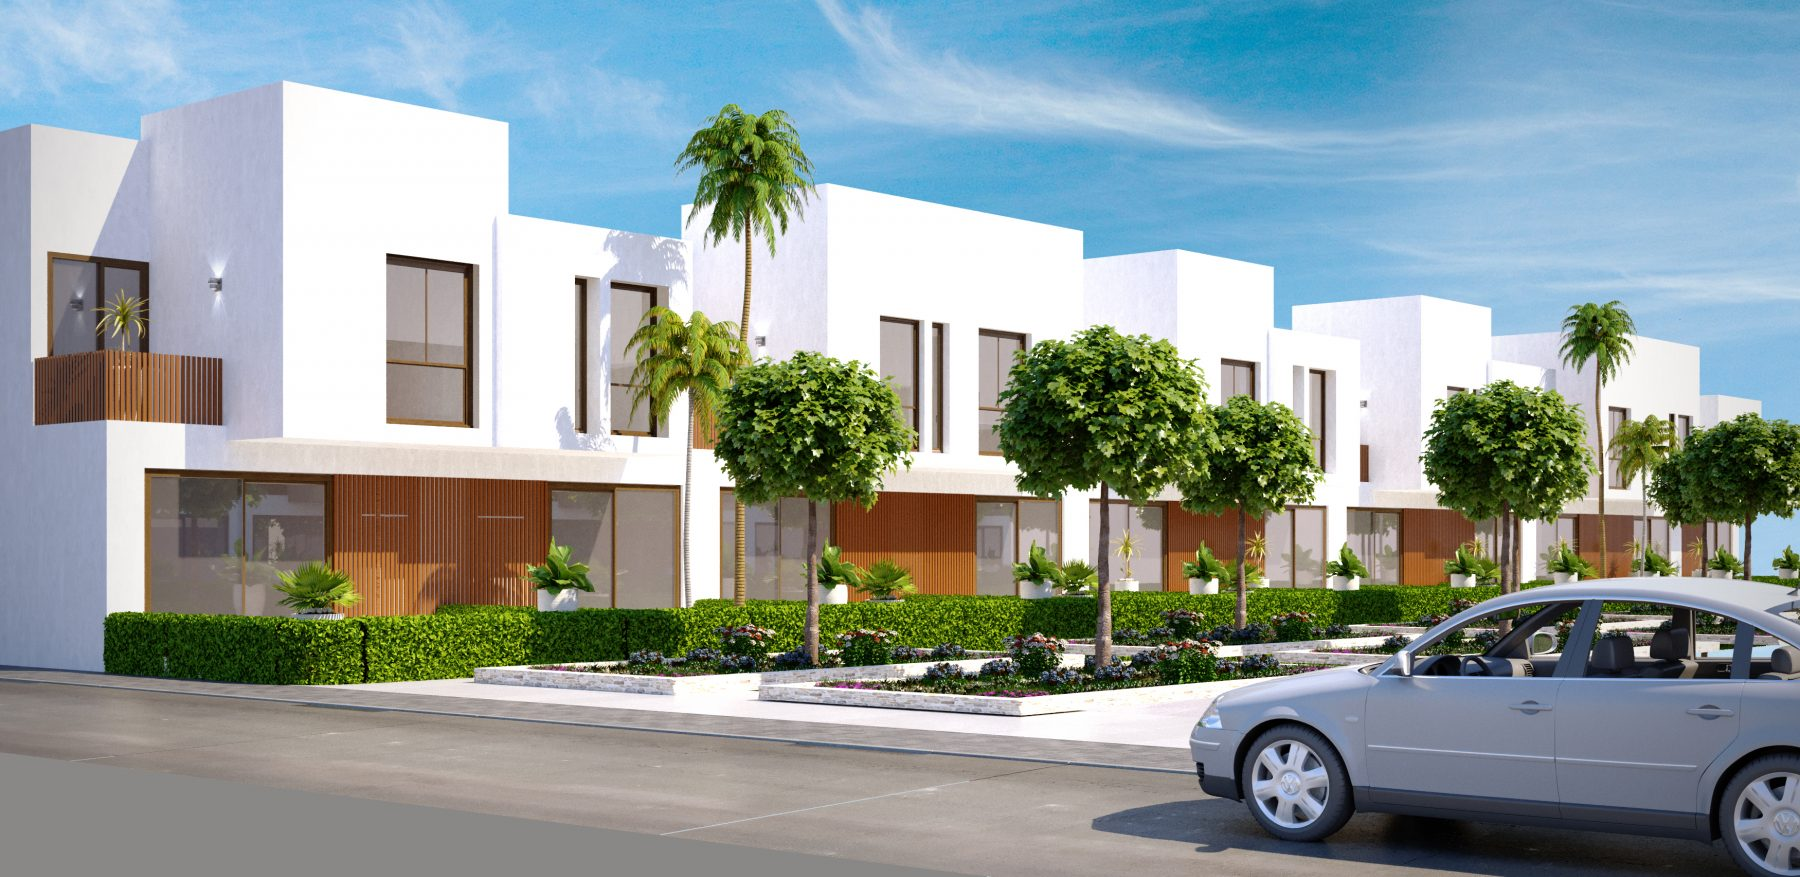 Cocoon homes is committed to developing well designed comfortable durable and affordable homes of good building standard to the nigerian market